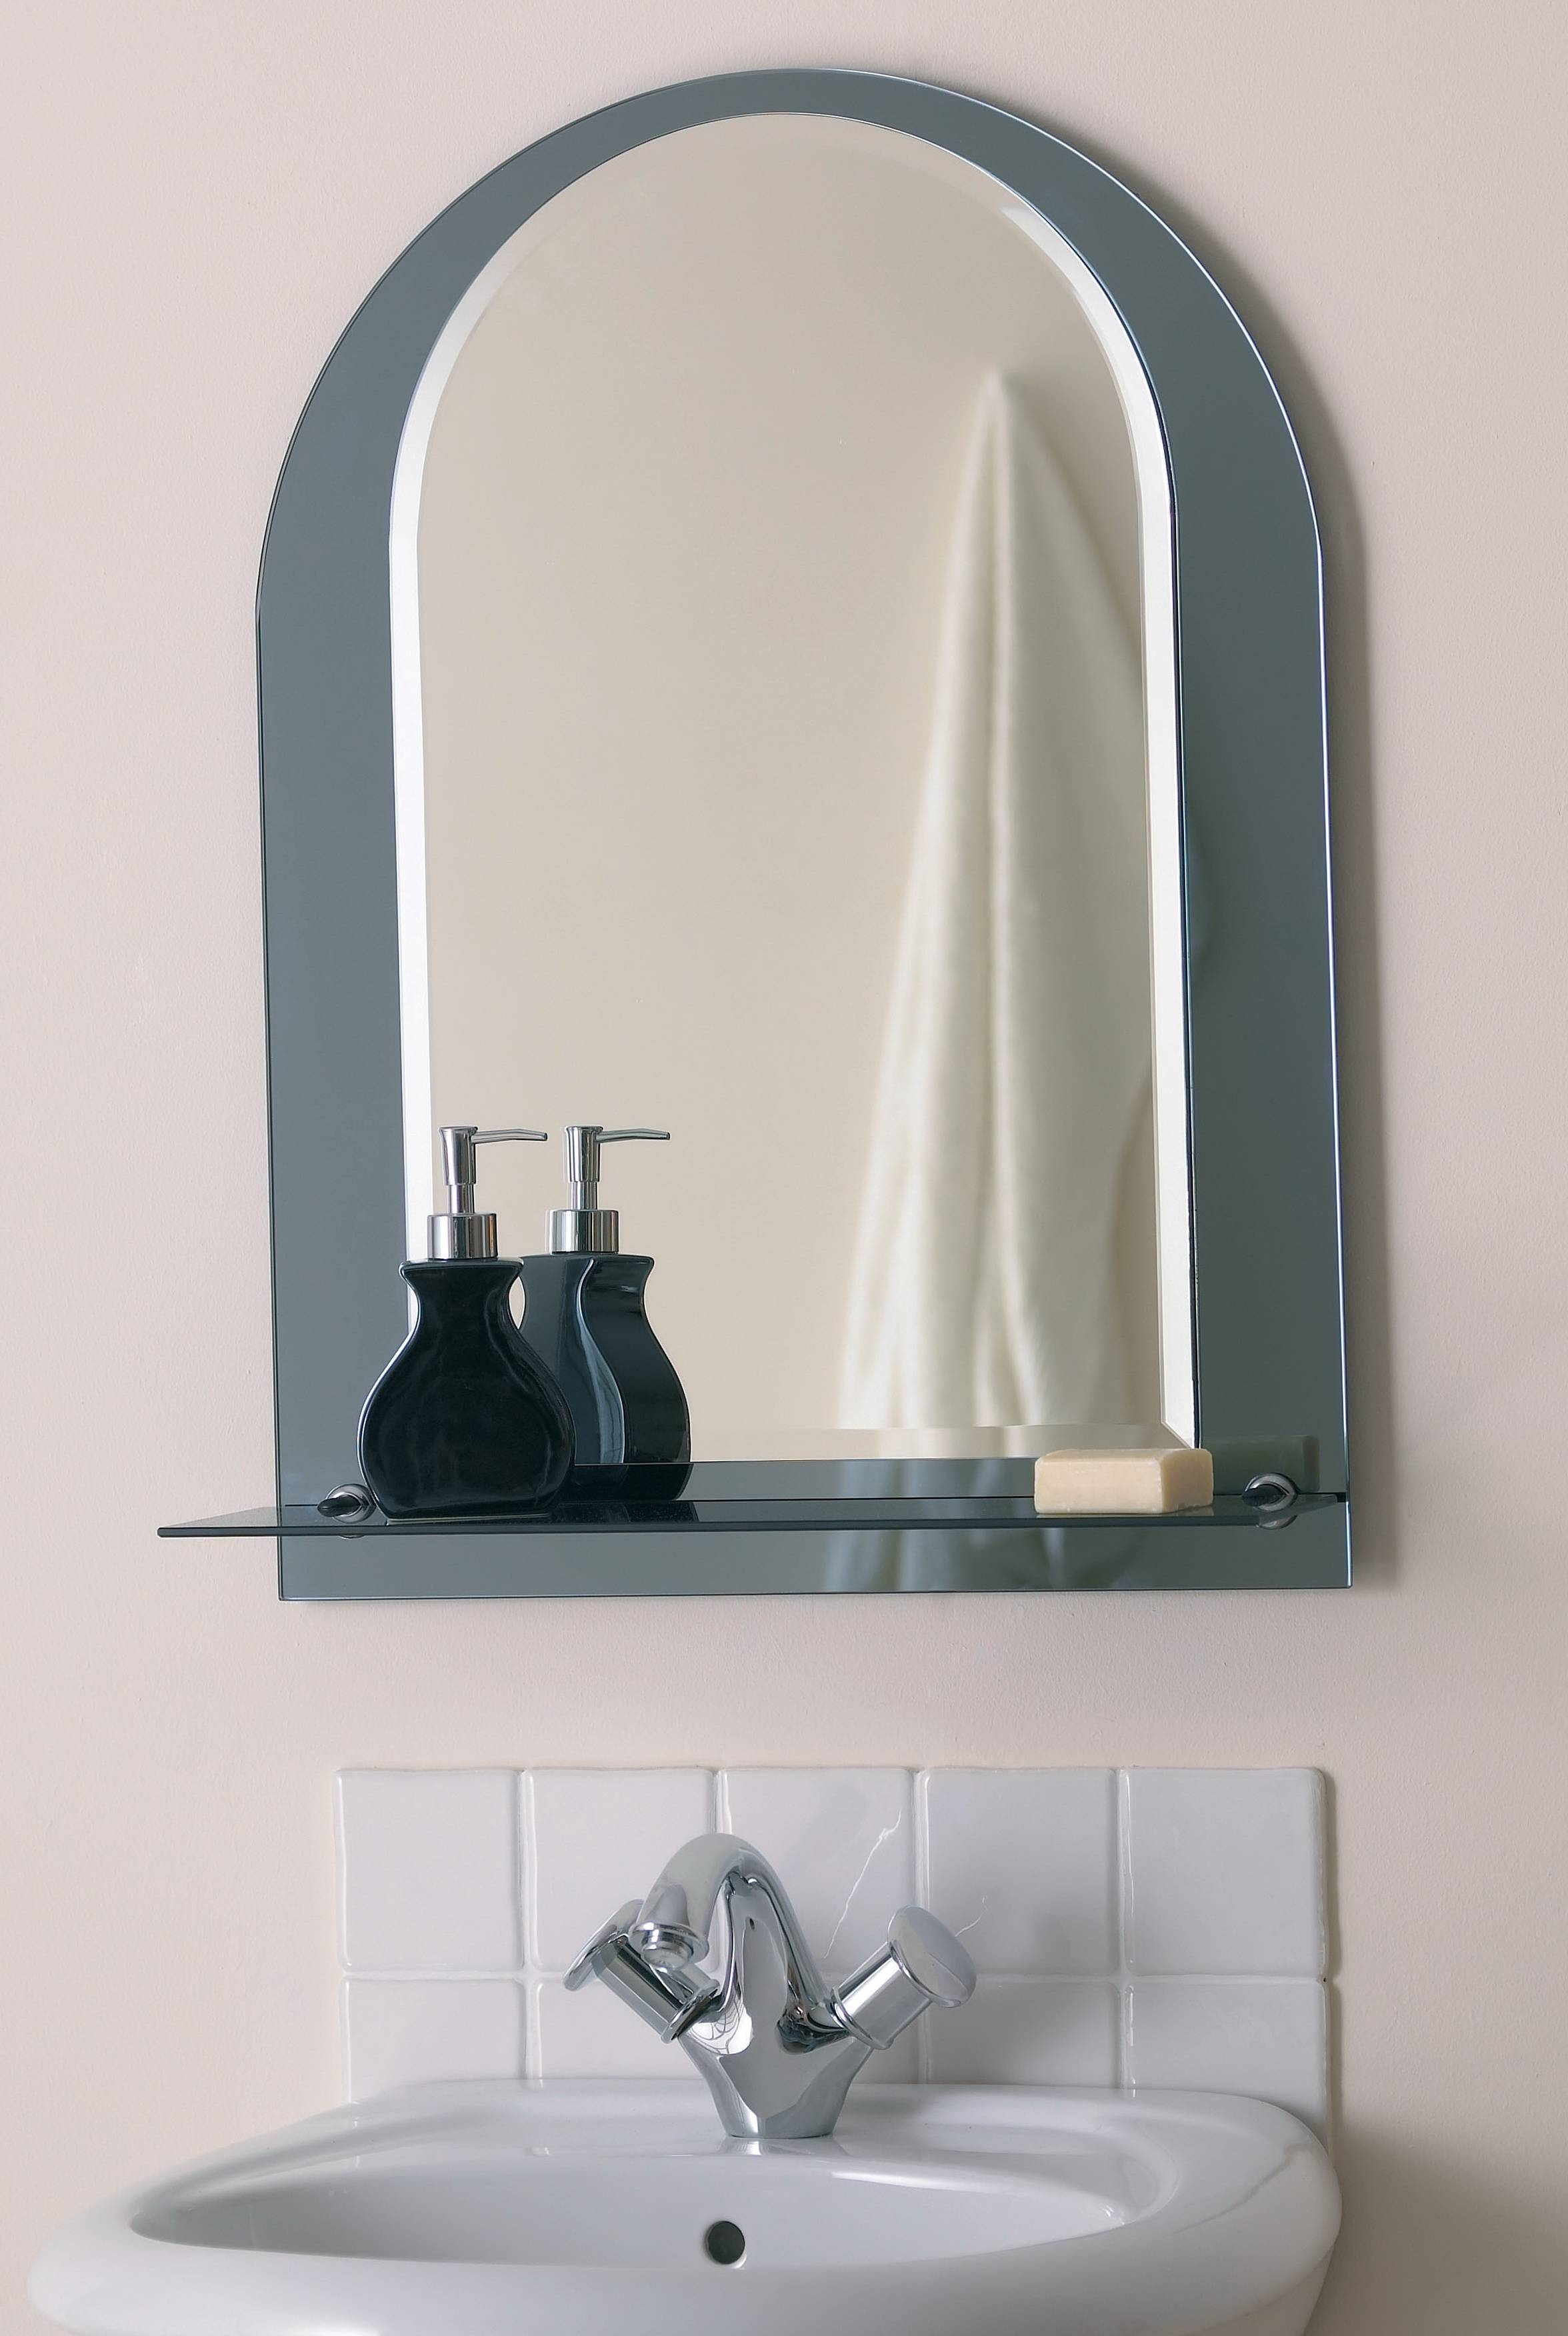 Bathroom: Arched Lowes Bathroom Mirror With Shelf Attached For with Arched Bathroom Mirrors (Image 7 of 15)